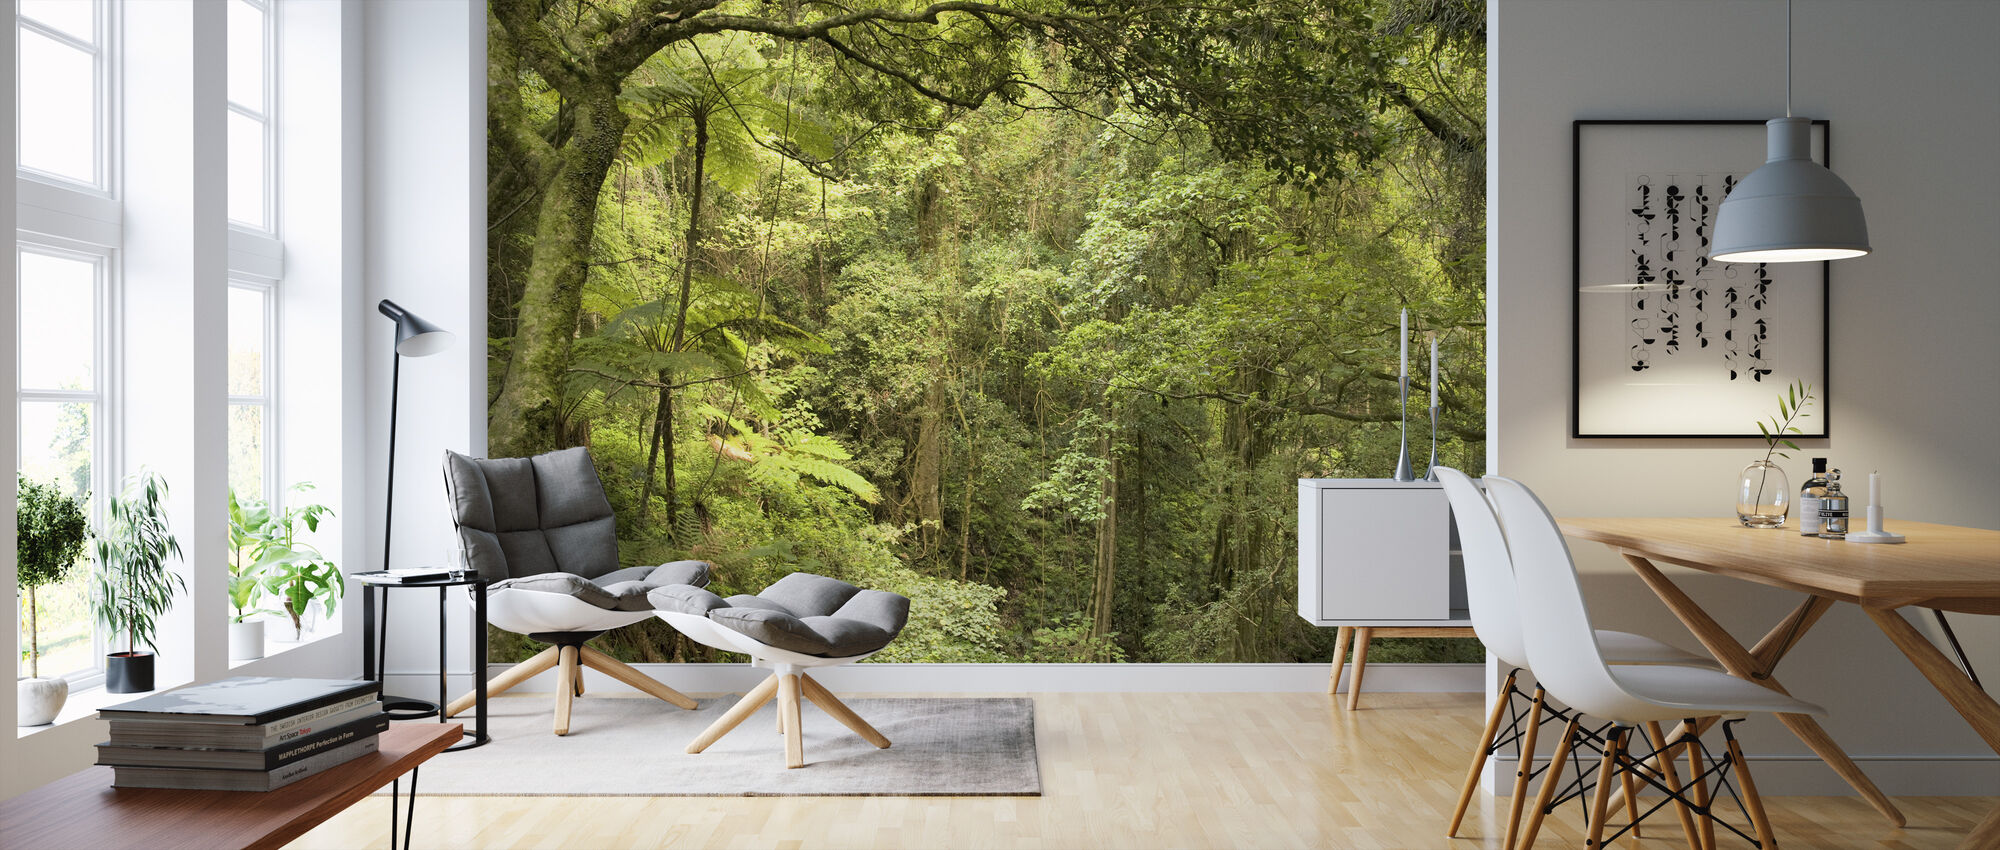 Bunya Mountains National Park - Wallpaper - Living Room